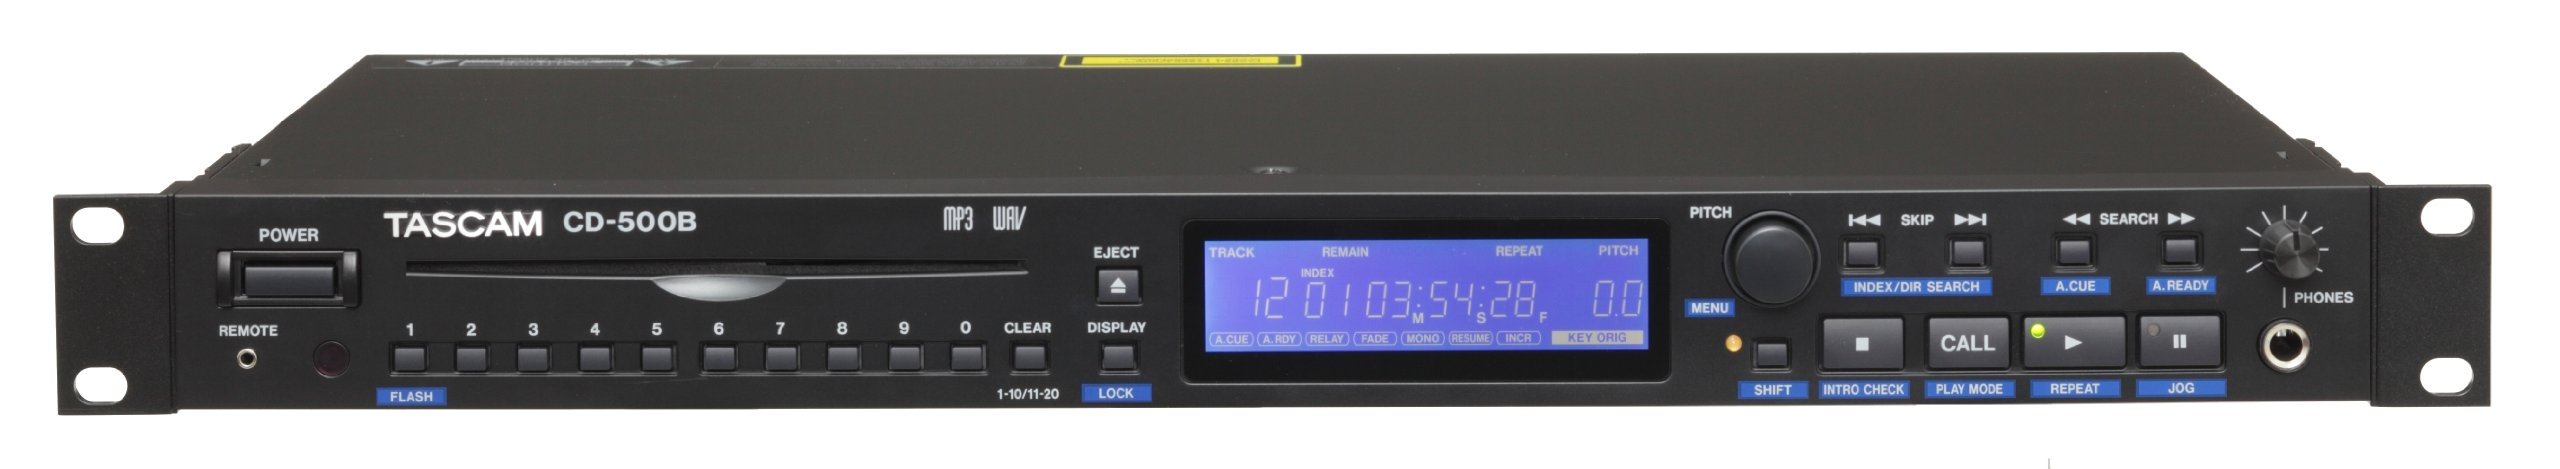 Tascam CD-500B Single Rackspace CD Player